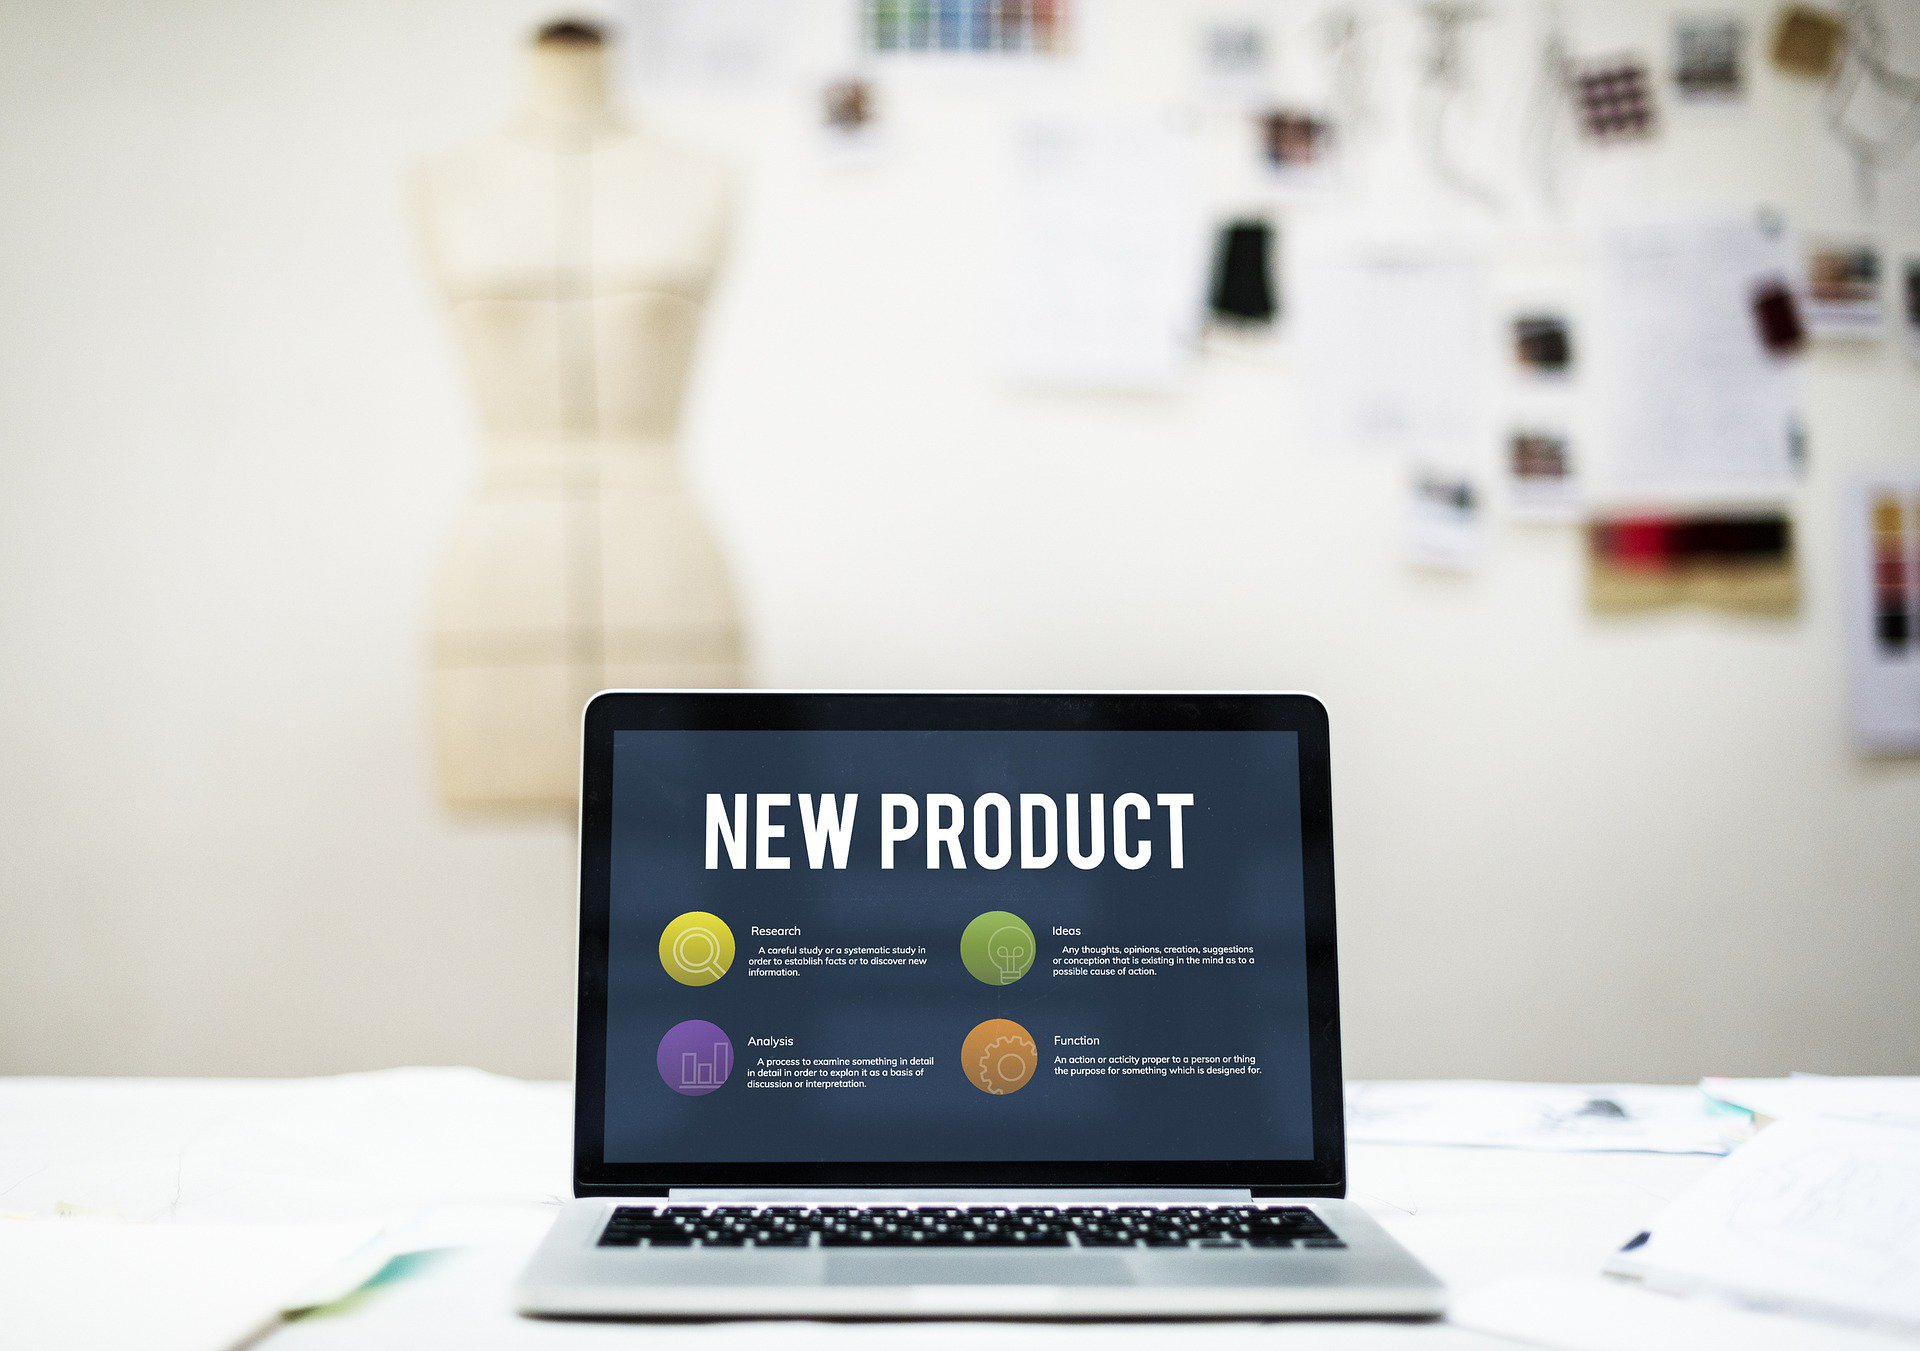 3 Easy Steps To New Product Adoption